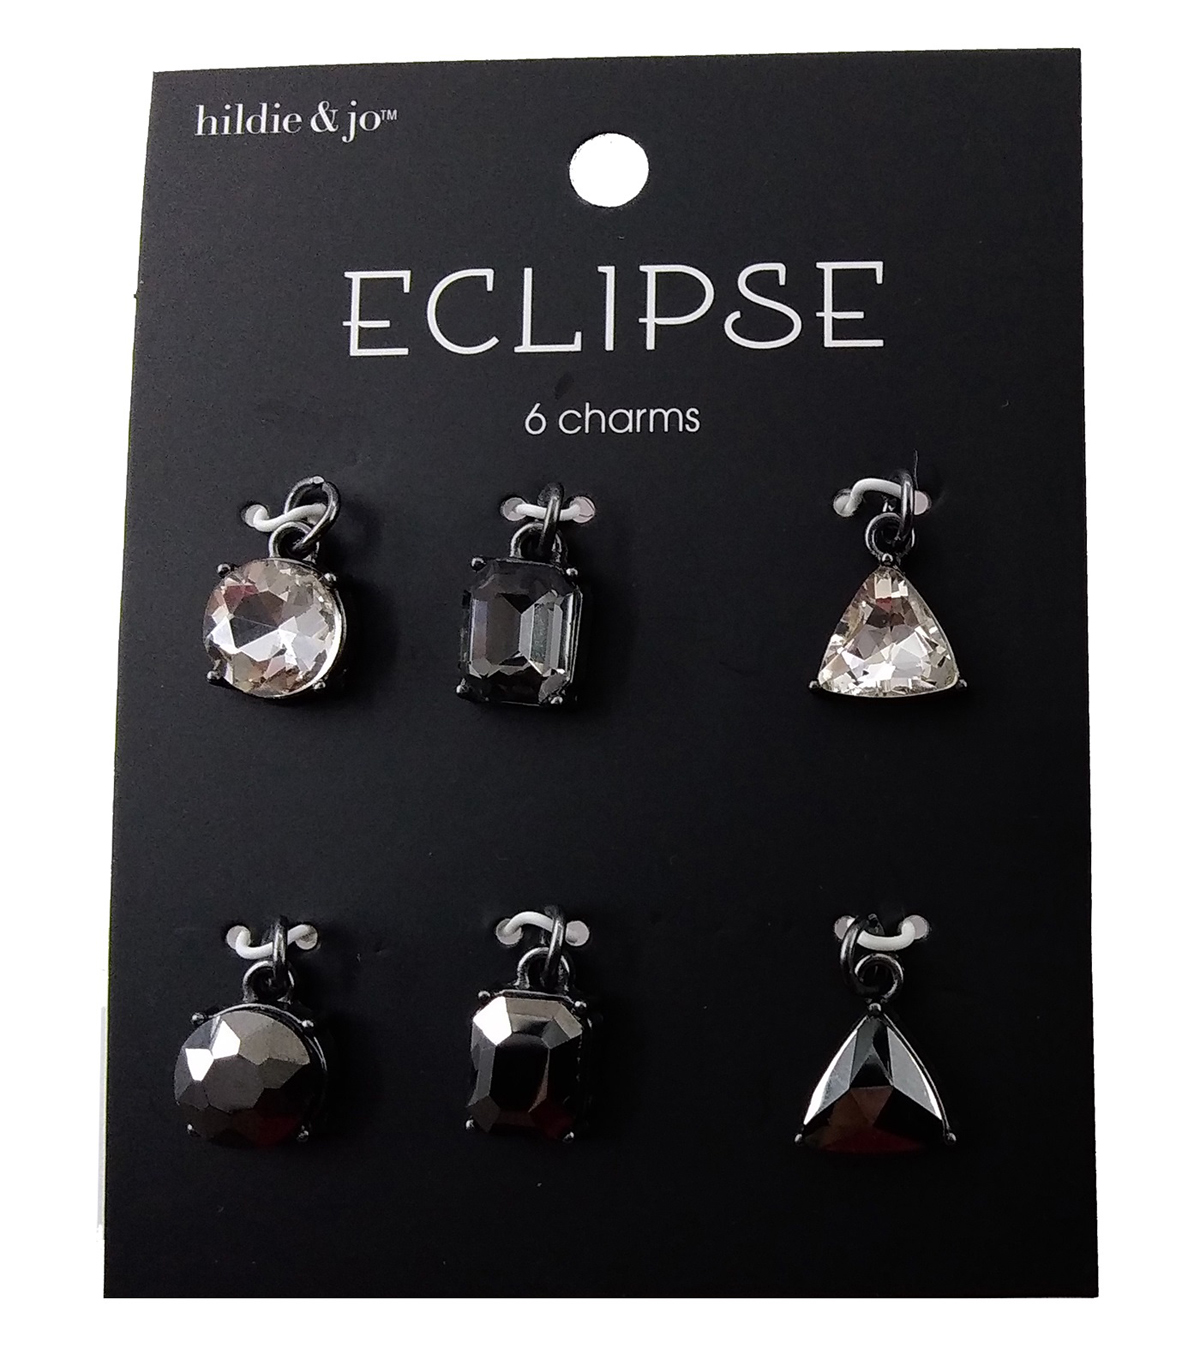 hildie & jo Eclipse Charms-Round Square Triangle Grey 6pc